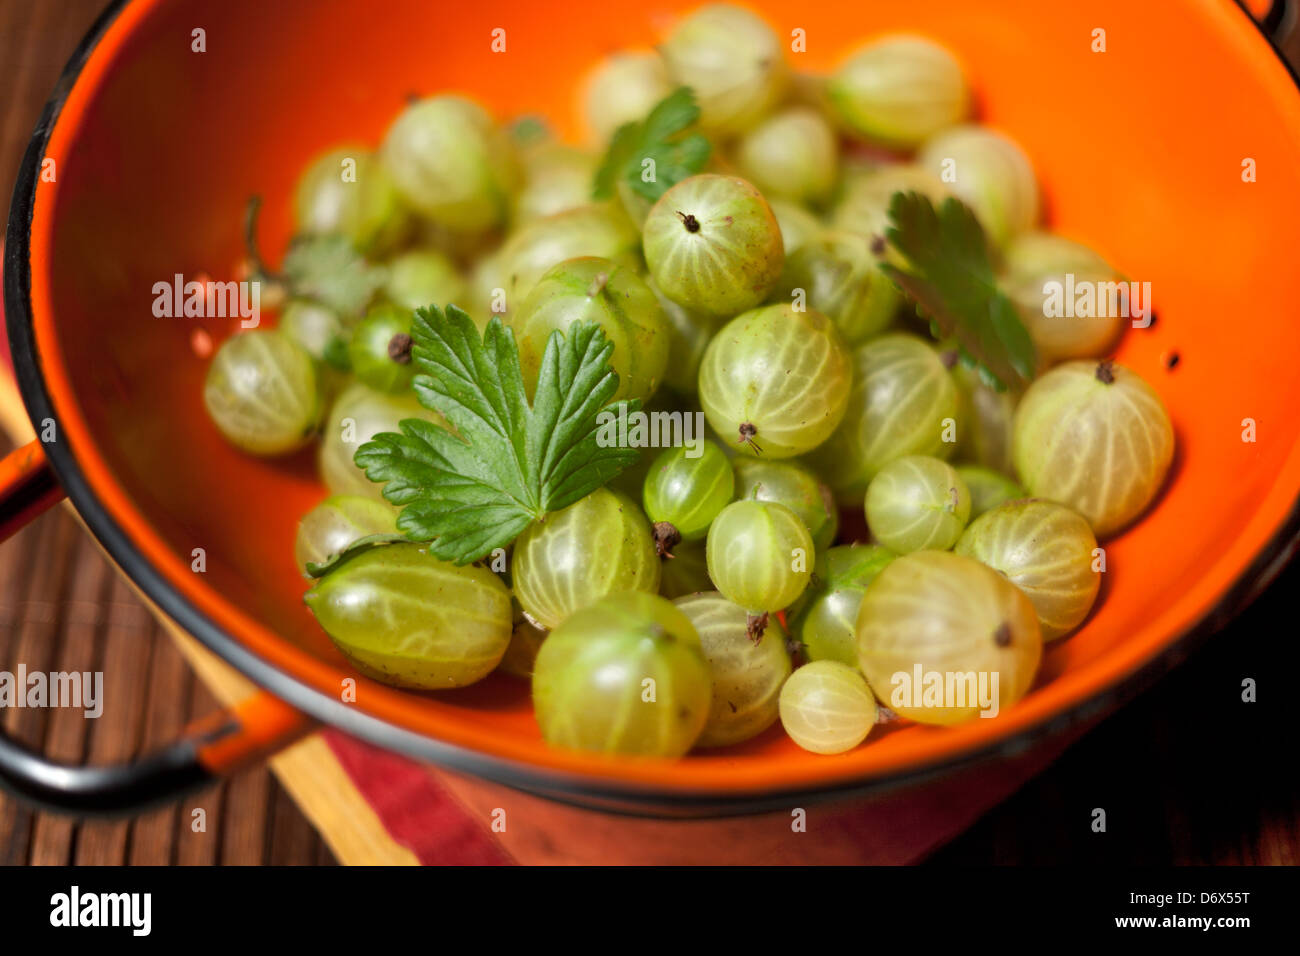 Handpicked gooseberries in an orange colander on a table - Stock Image